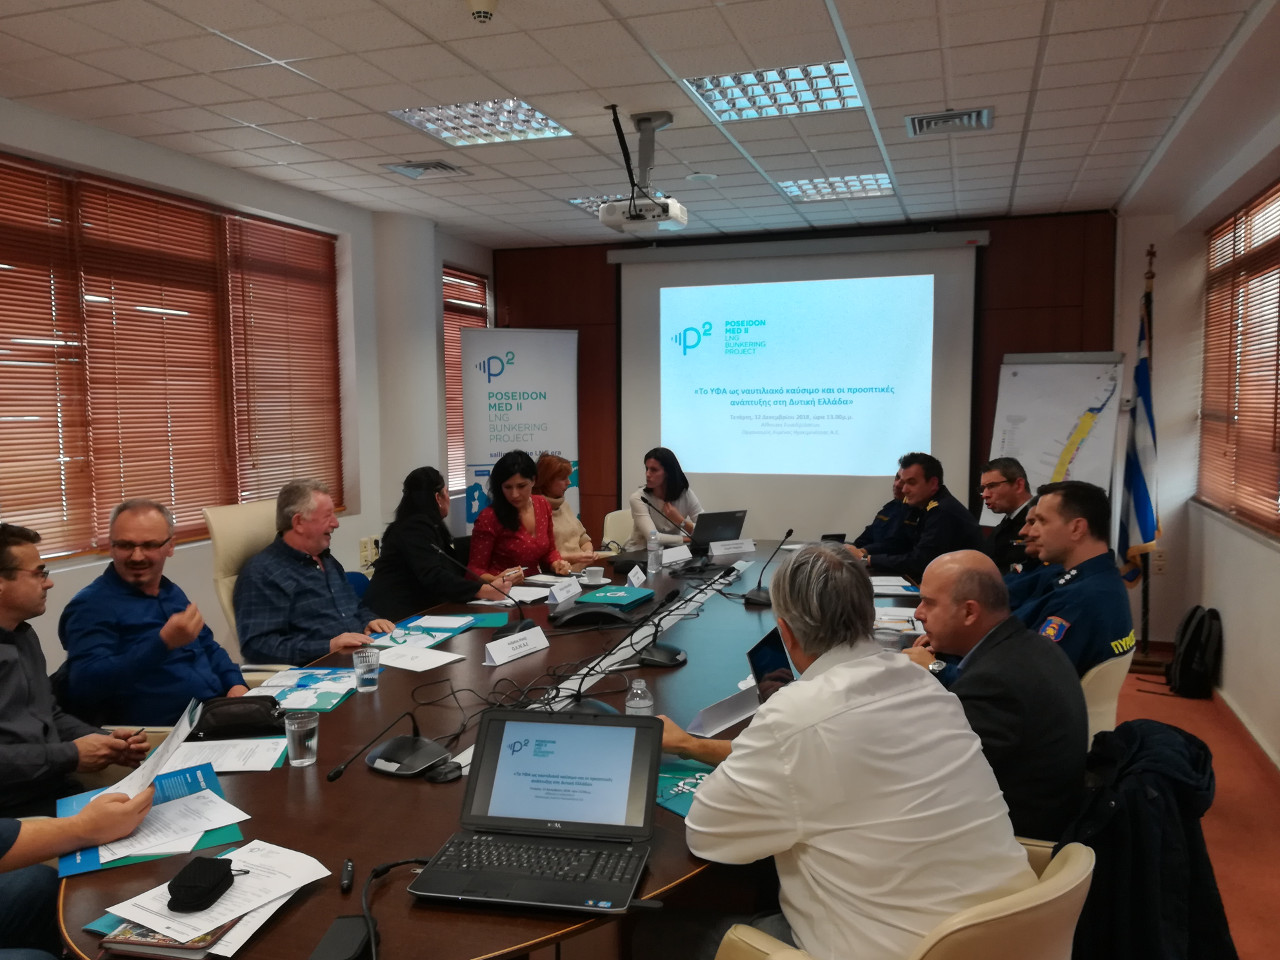 PMII dissemination event at Igoumenitsa Port Authority premises